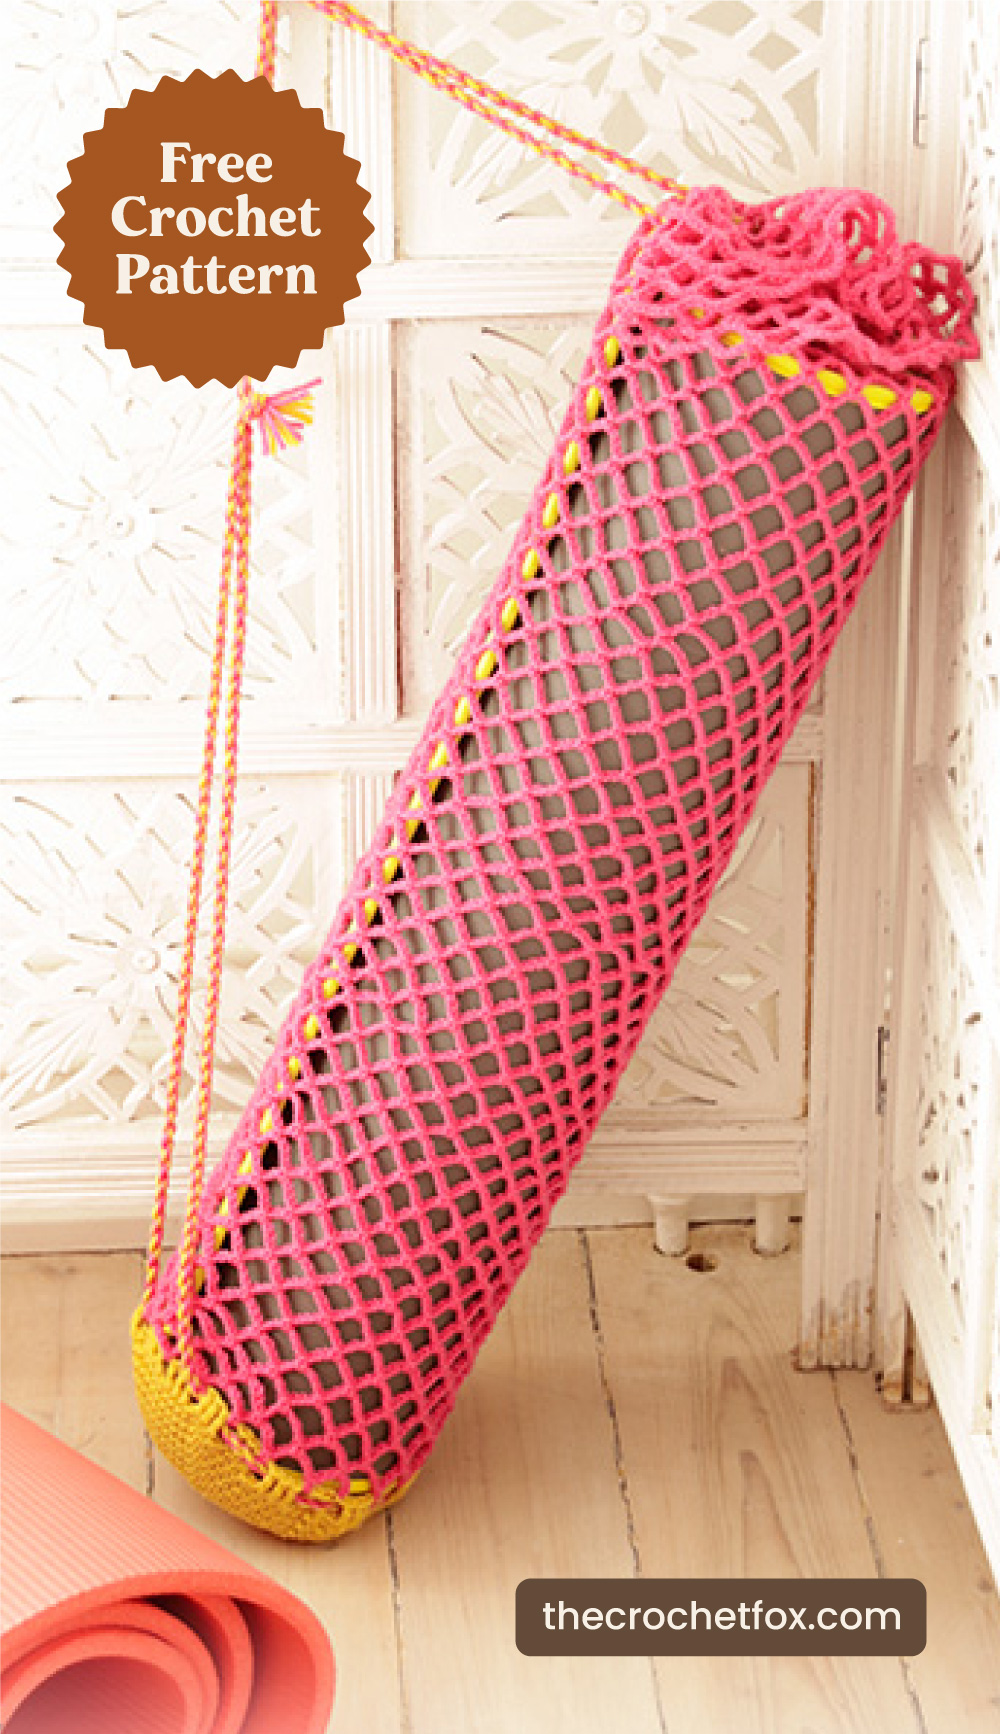 """Text area which says """"Free Crochet Pattern"""" next to a  pink crochet yoga mat bag leaning on  a corner followed by another text area which says """"thecrochetfox.com"""""""